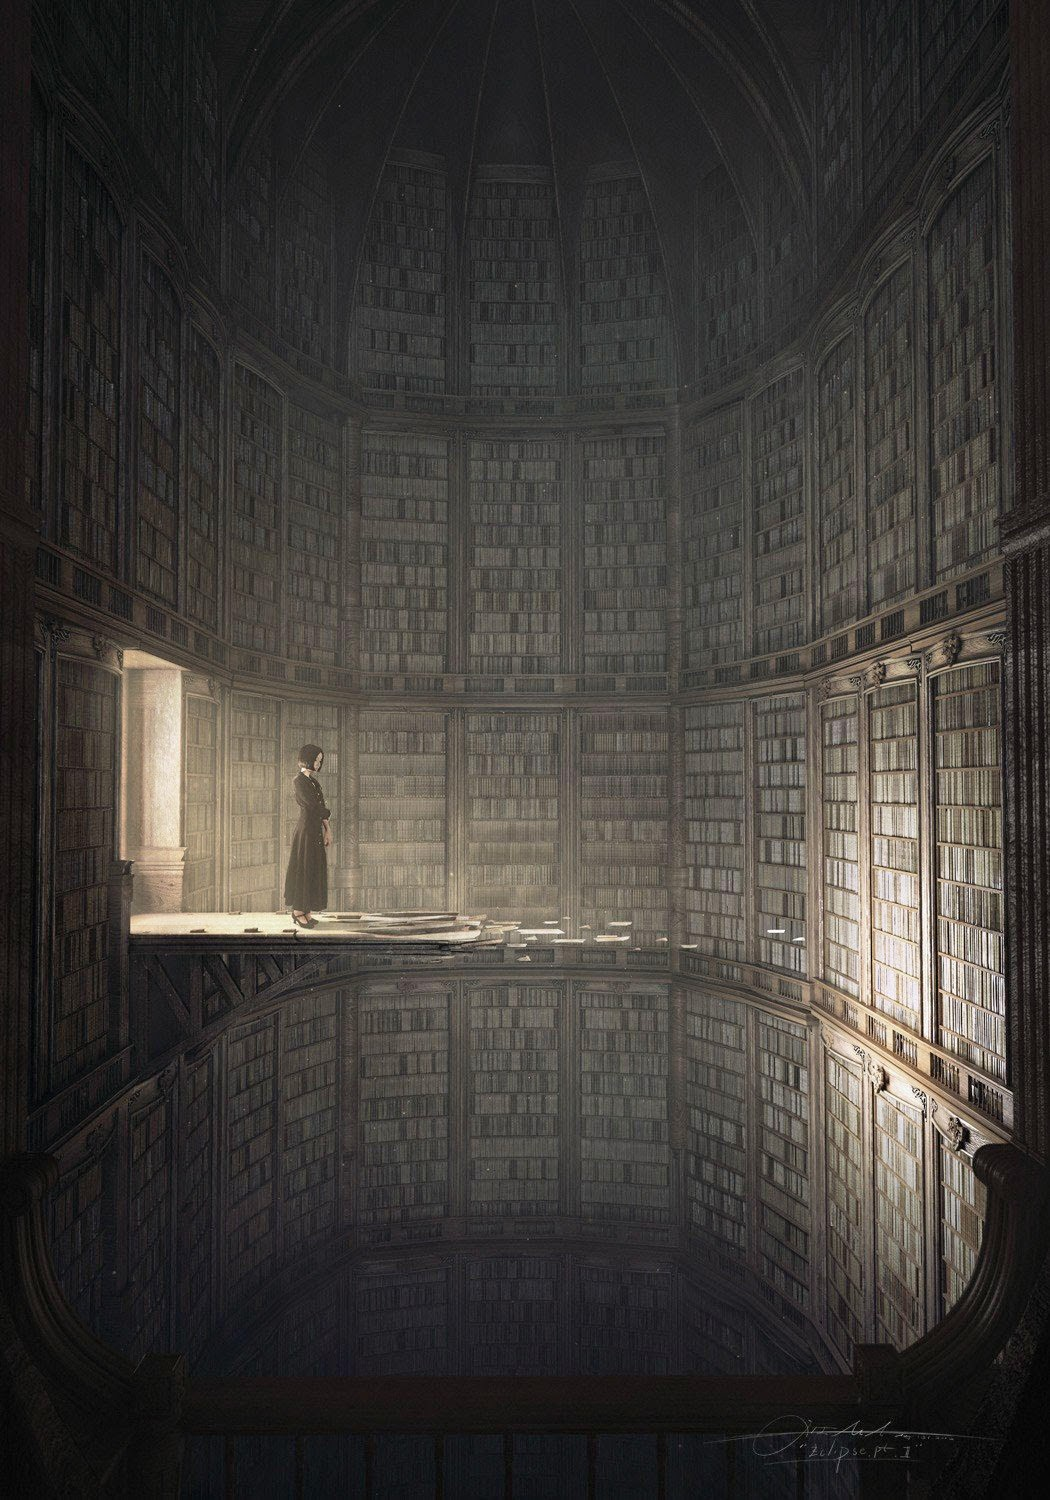 07-Jie Ma-Worlds-of-Books-and-Knowledge-in-Paintings-www-designstack-co